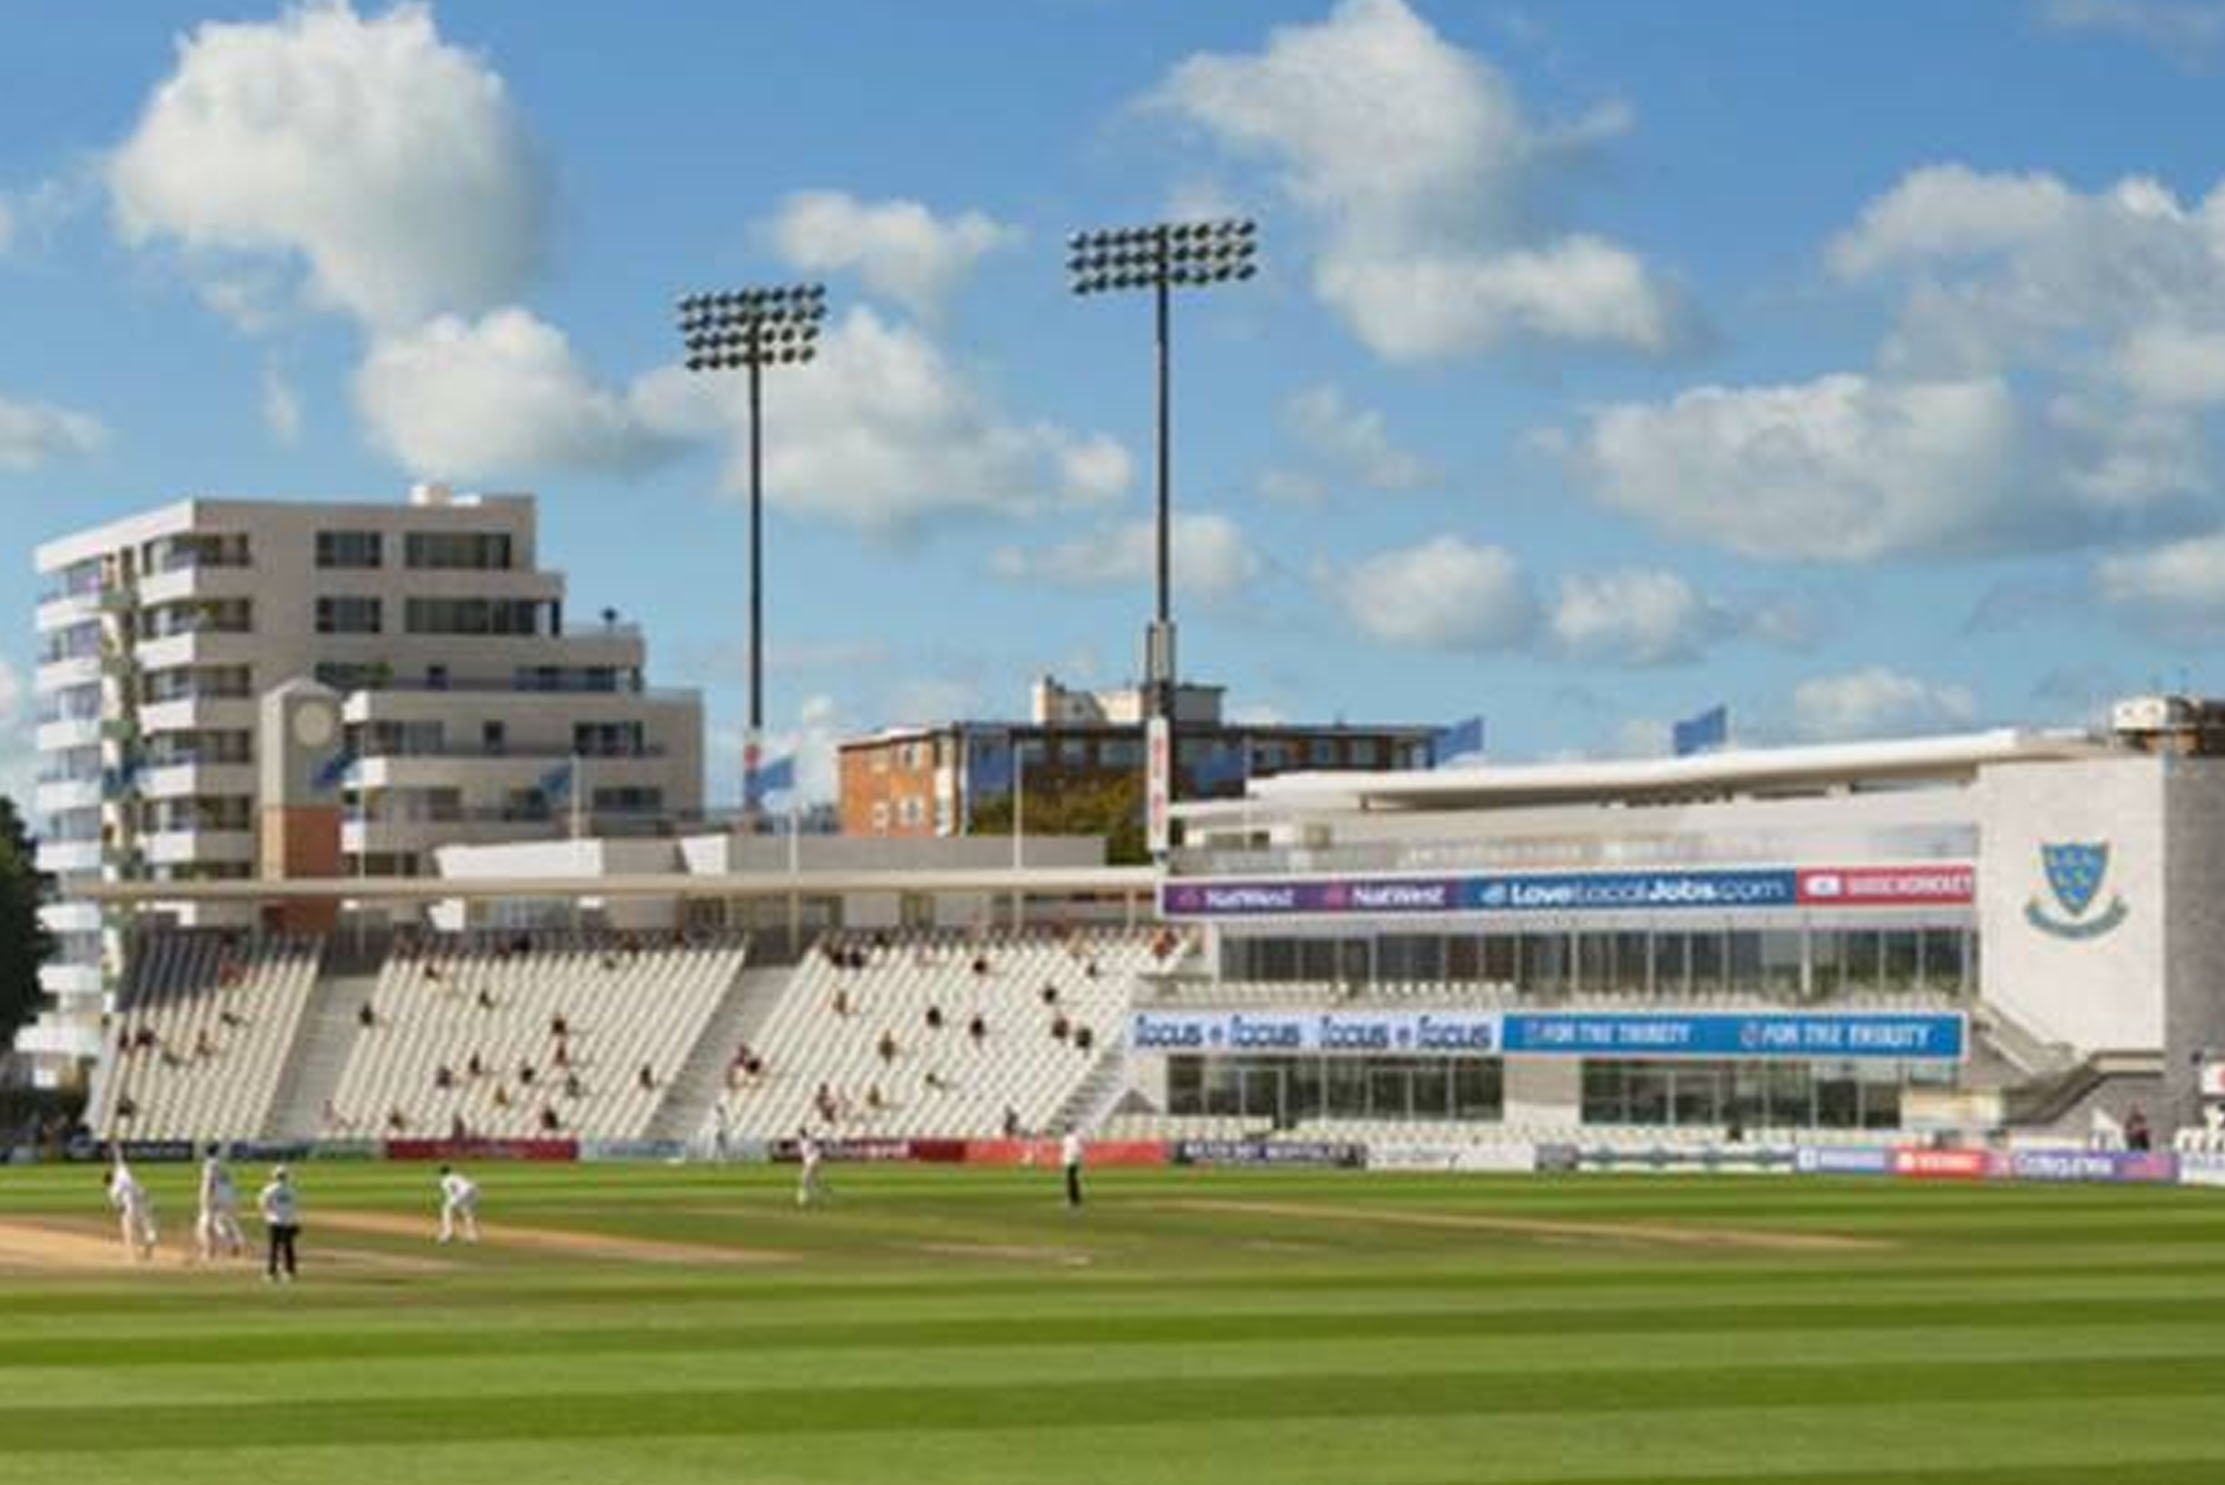 Exciting new plans have been announced to improve The 1st Central County Ground, the home of Sussex Cricket